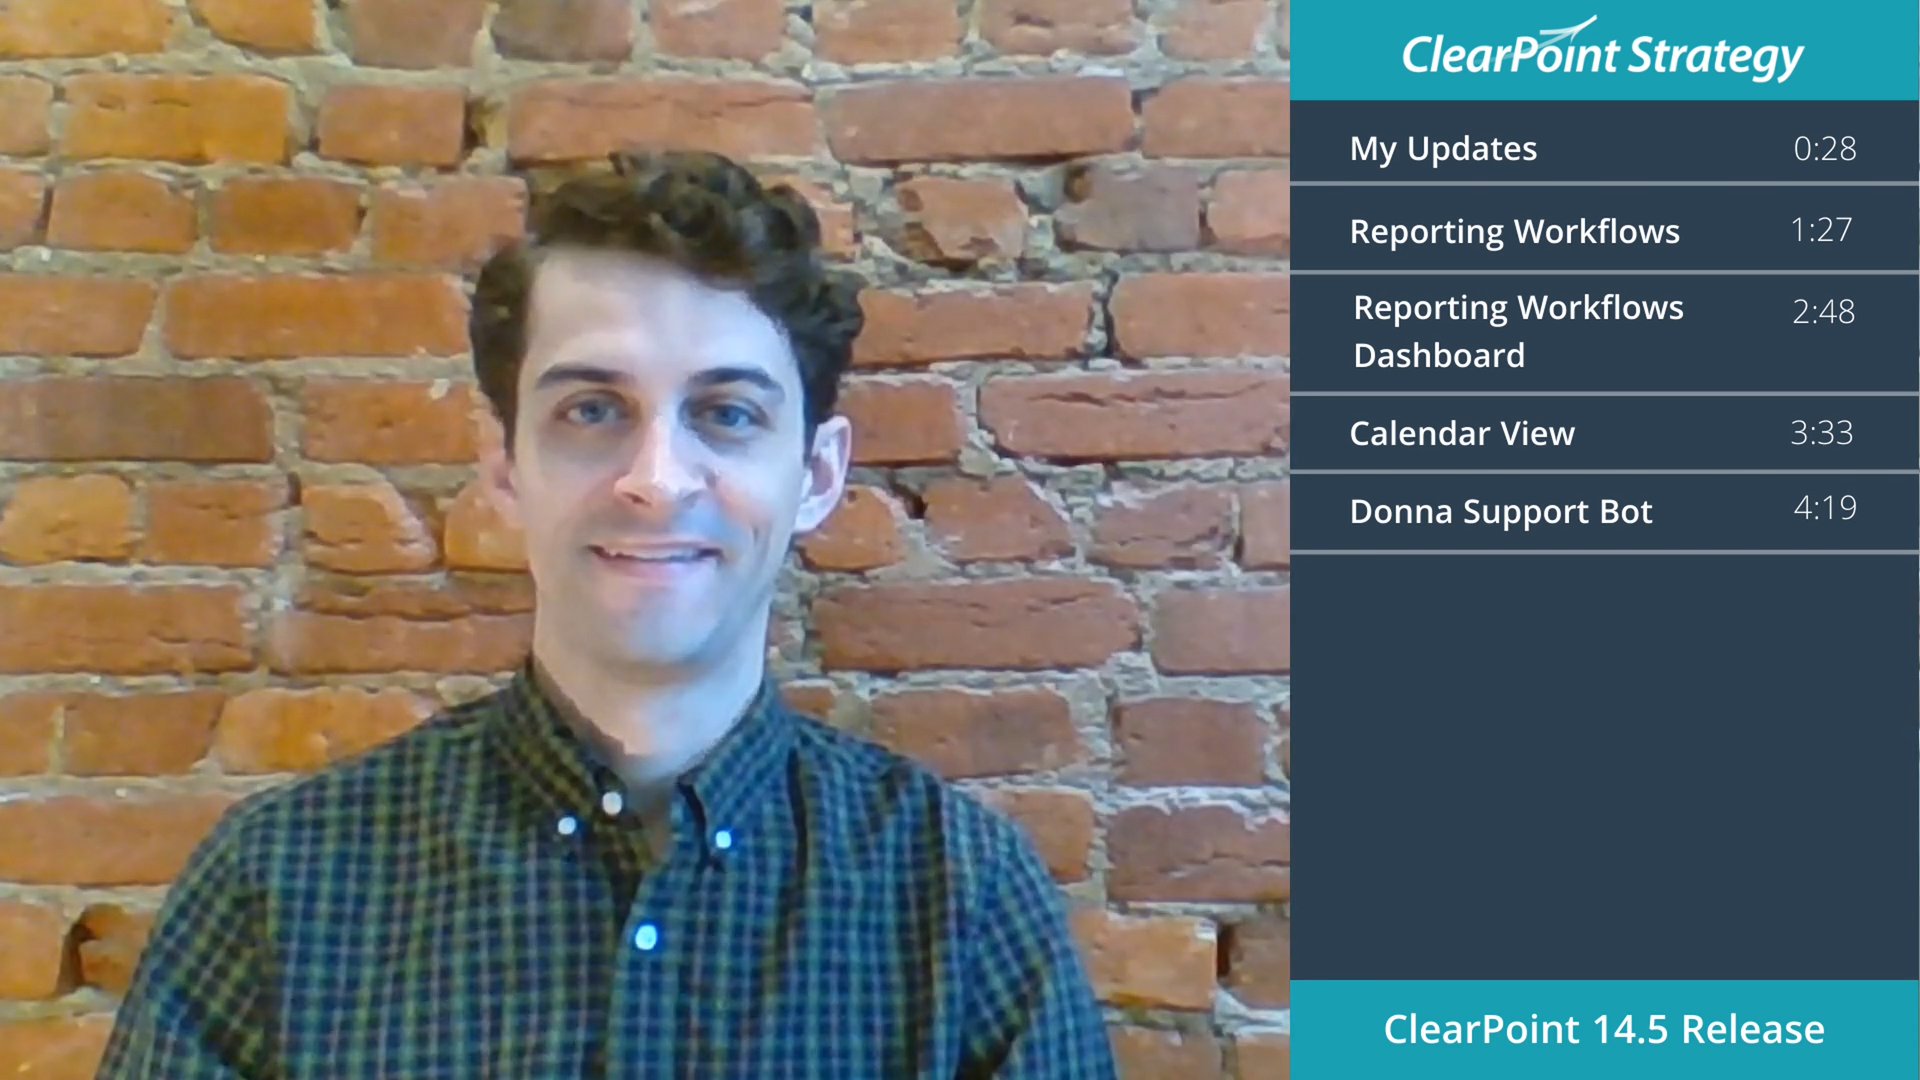 ClearPoint 14.5 Features